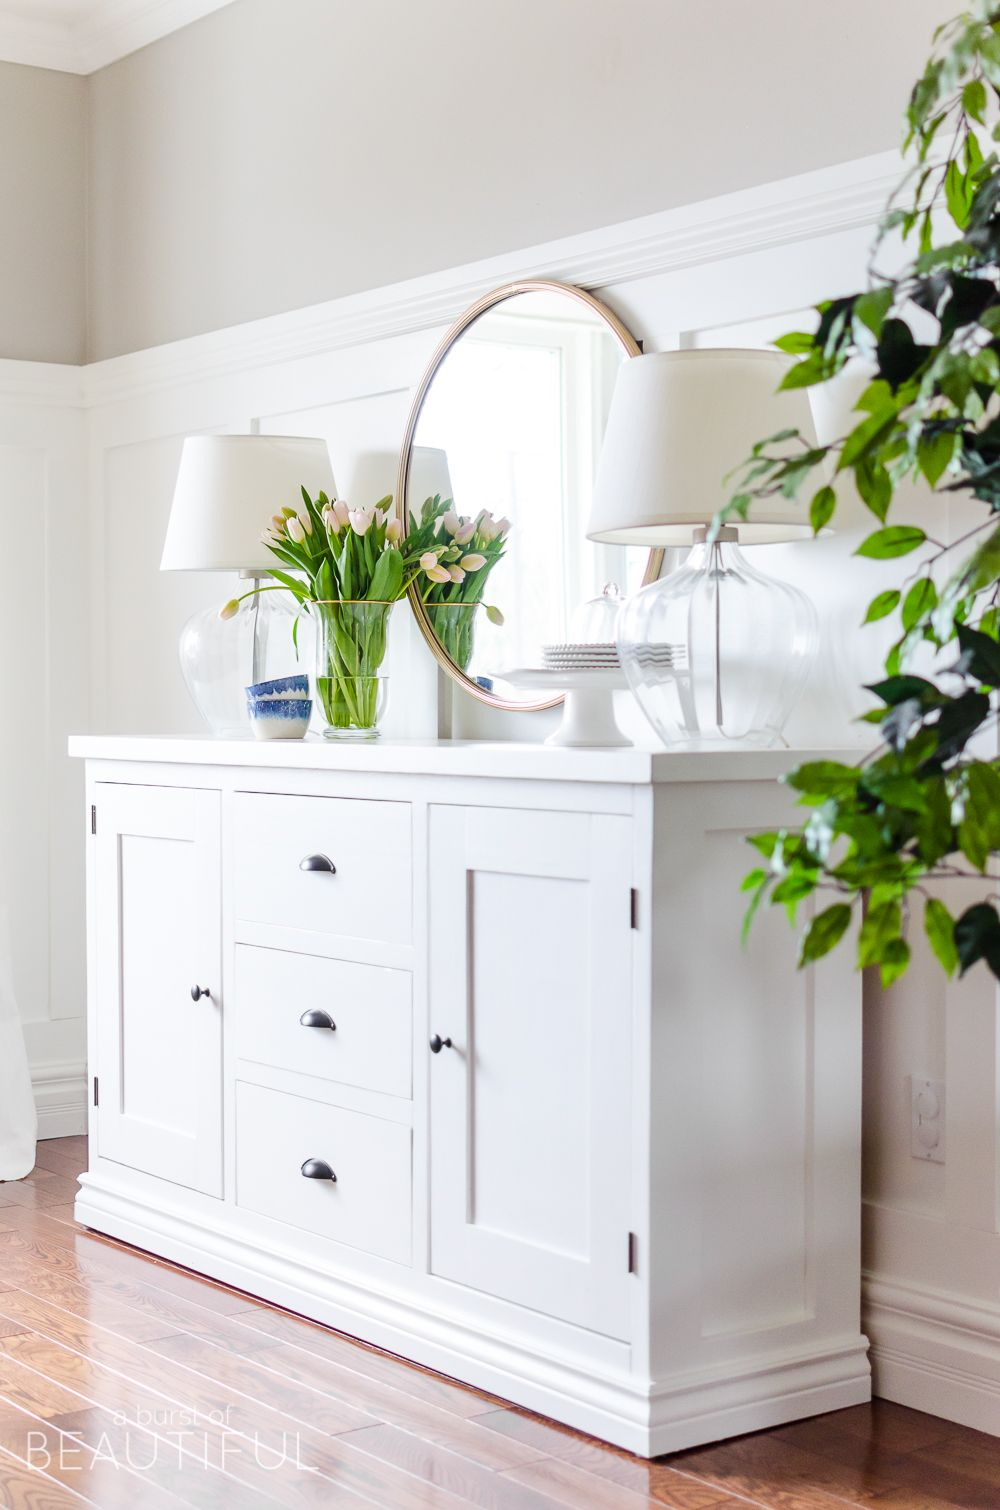 Simple Modern Farmhouse Sideboard Buffet | Dekoration